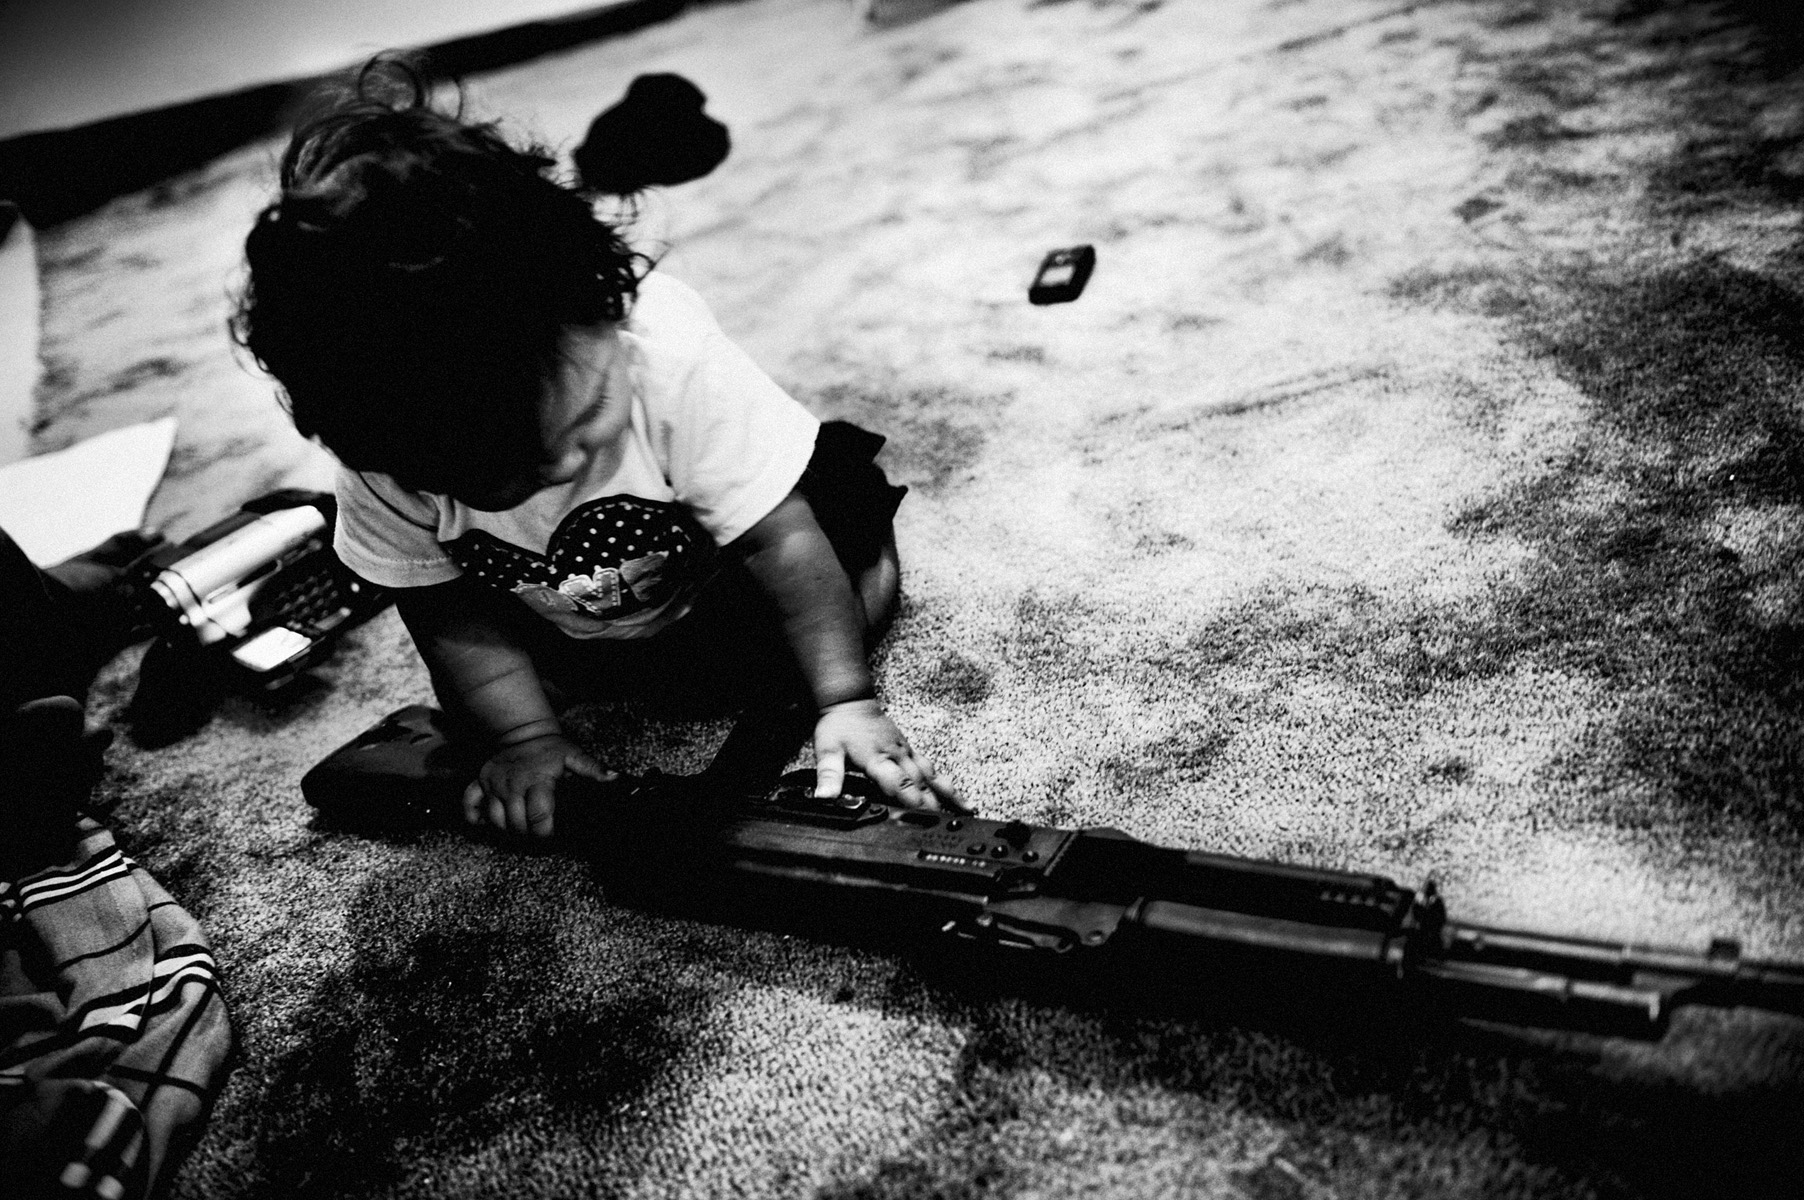 libya at the crossroads 7 : Dushka, the daughter of the only female soldier plays with her mum's gun